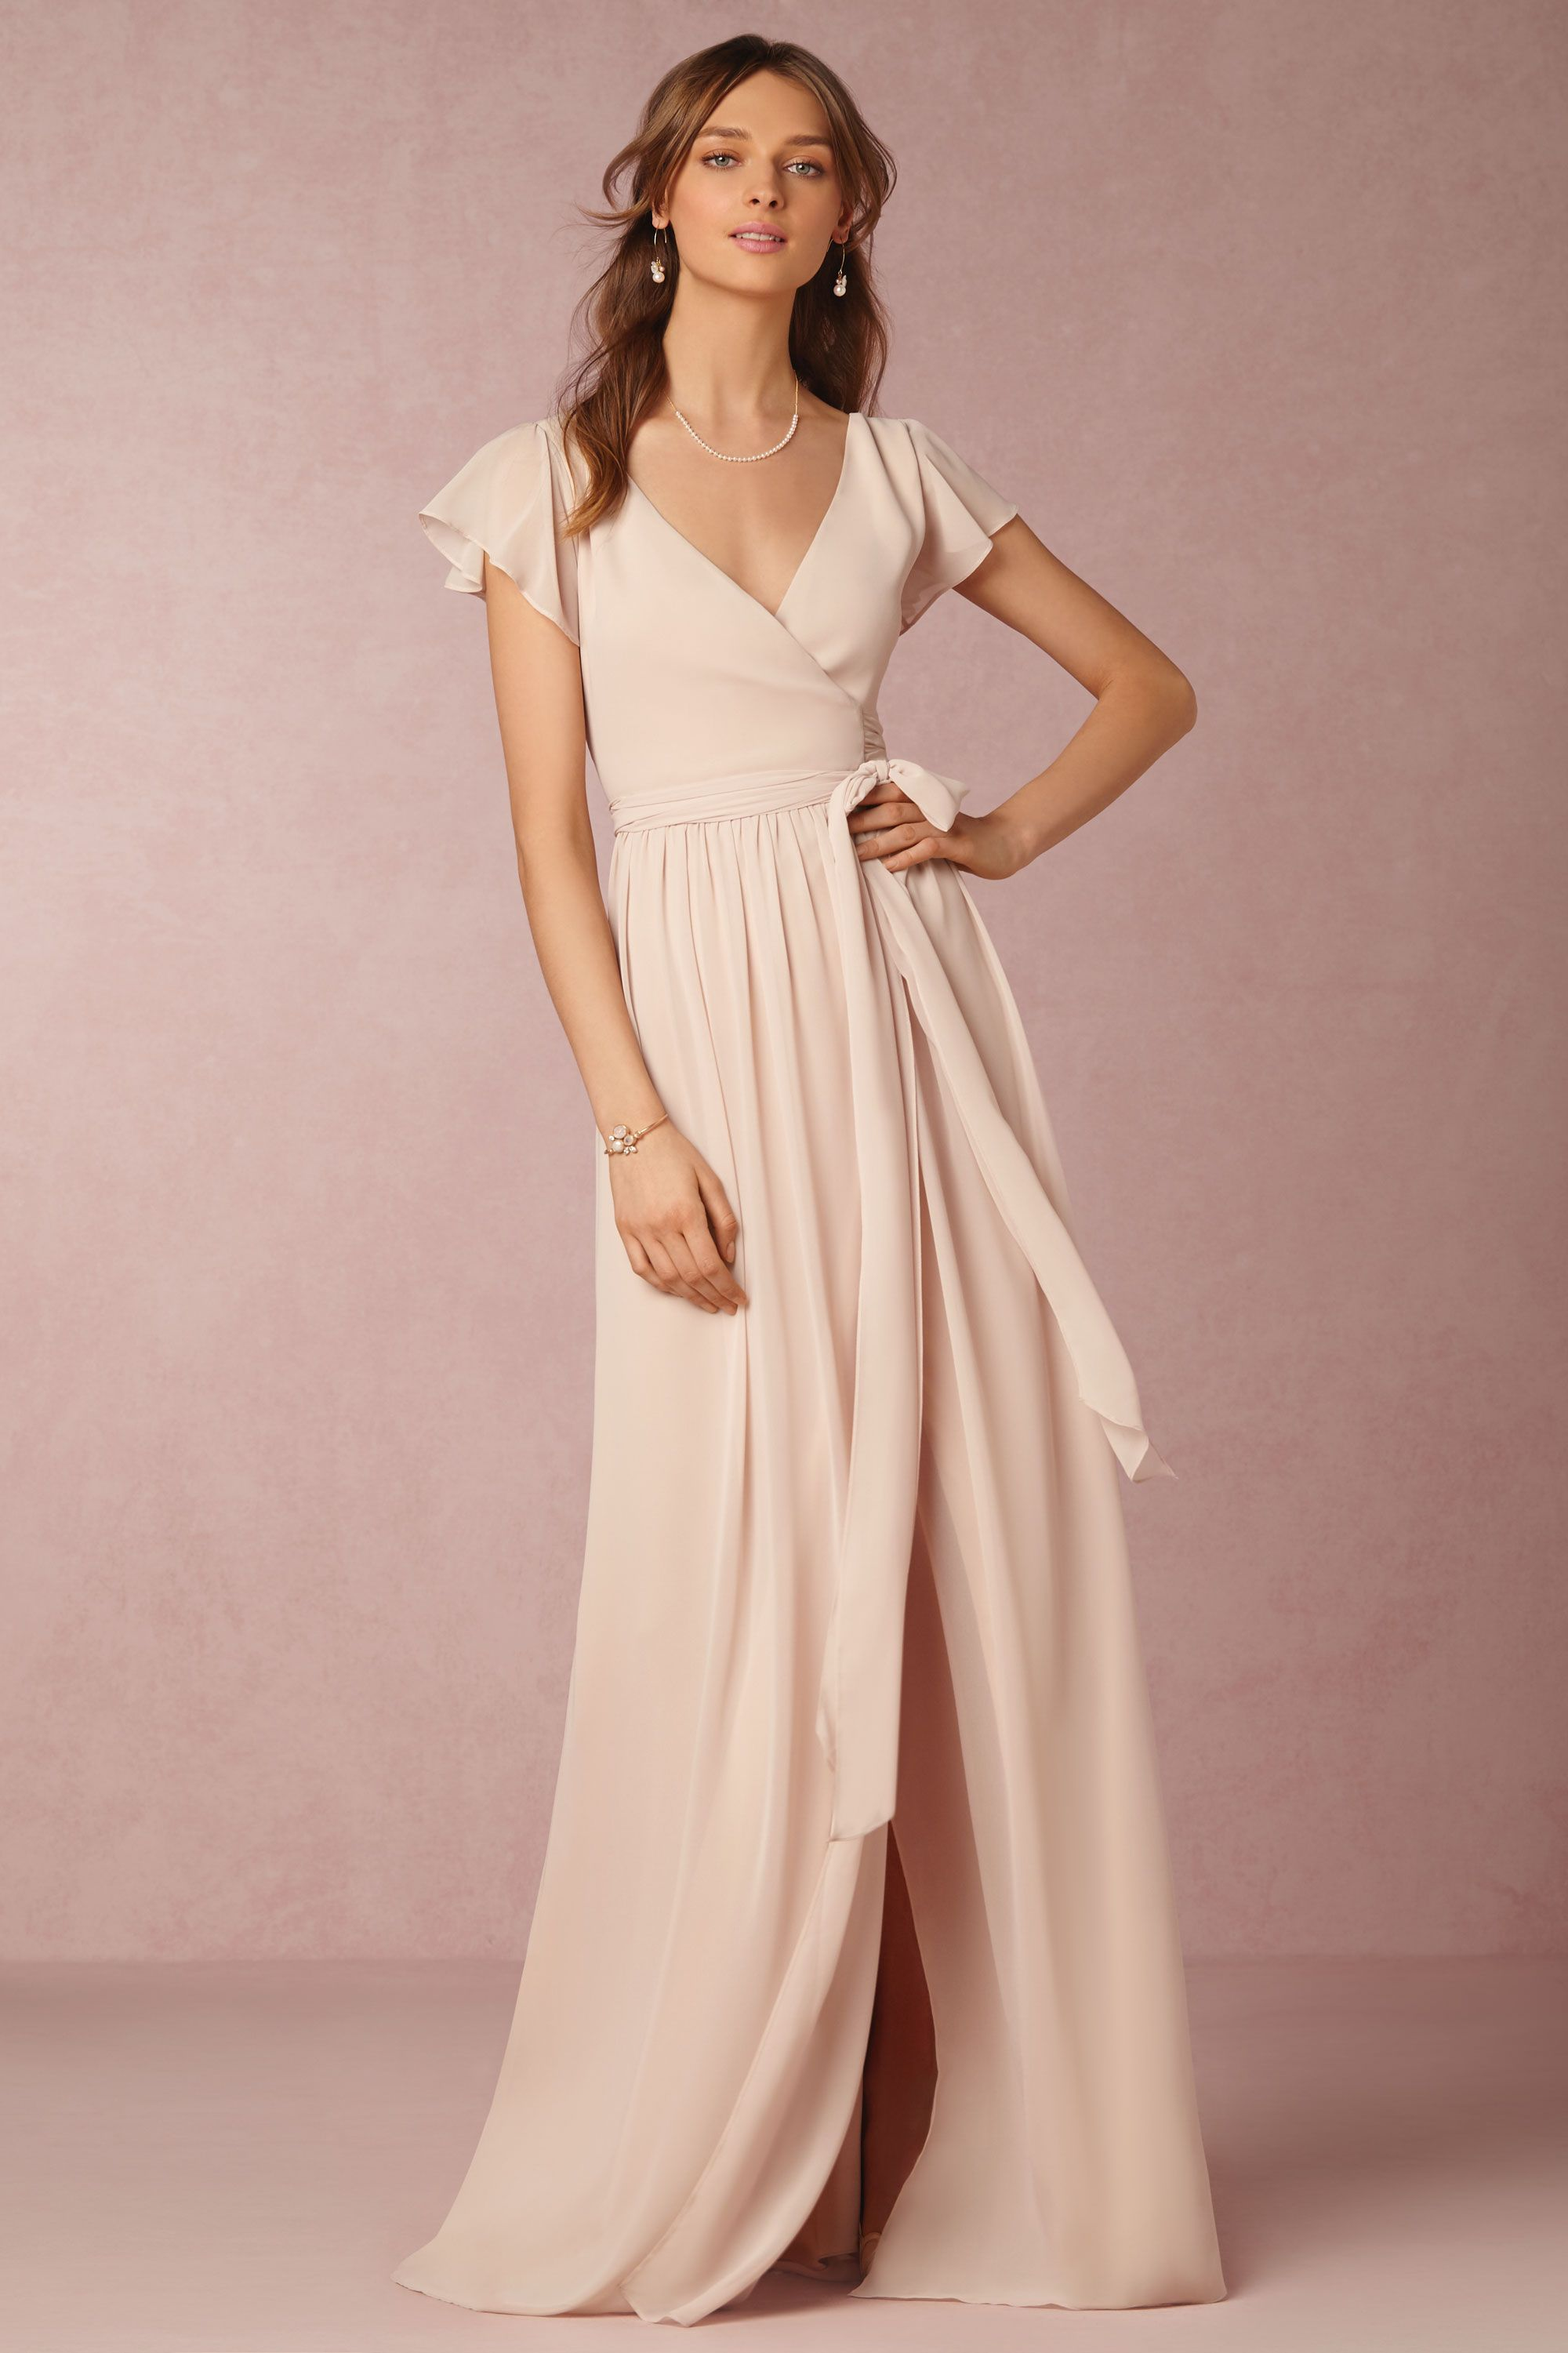 BHLDN\'s Joanna August Zola Dress in Sand | Damitas de honor, Damas y ...